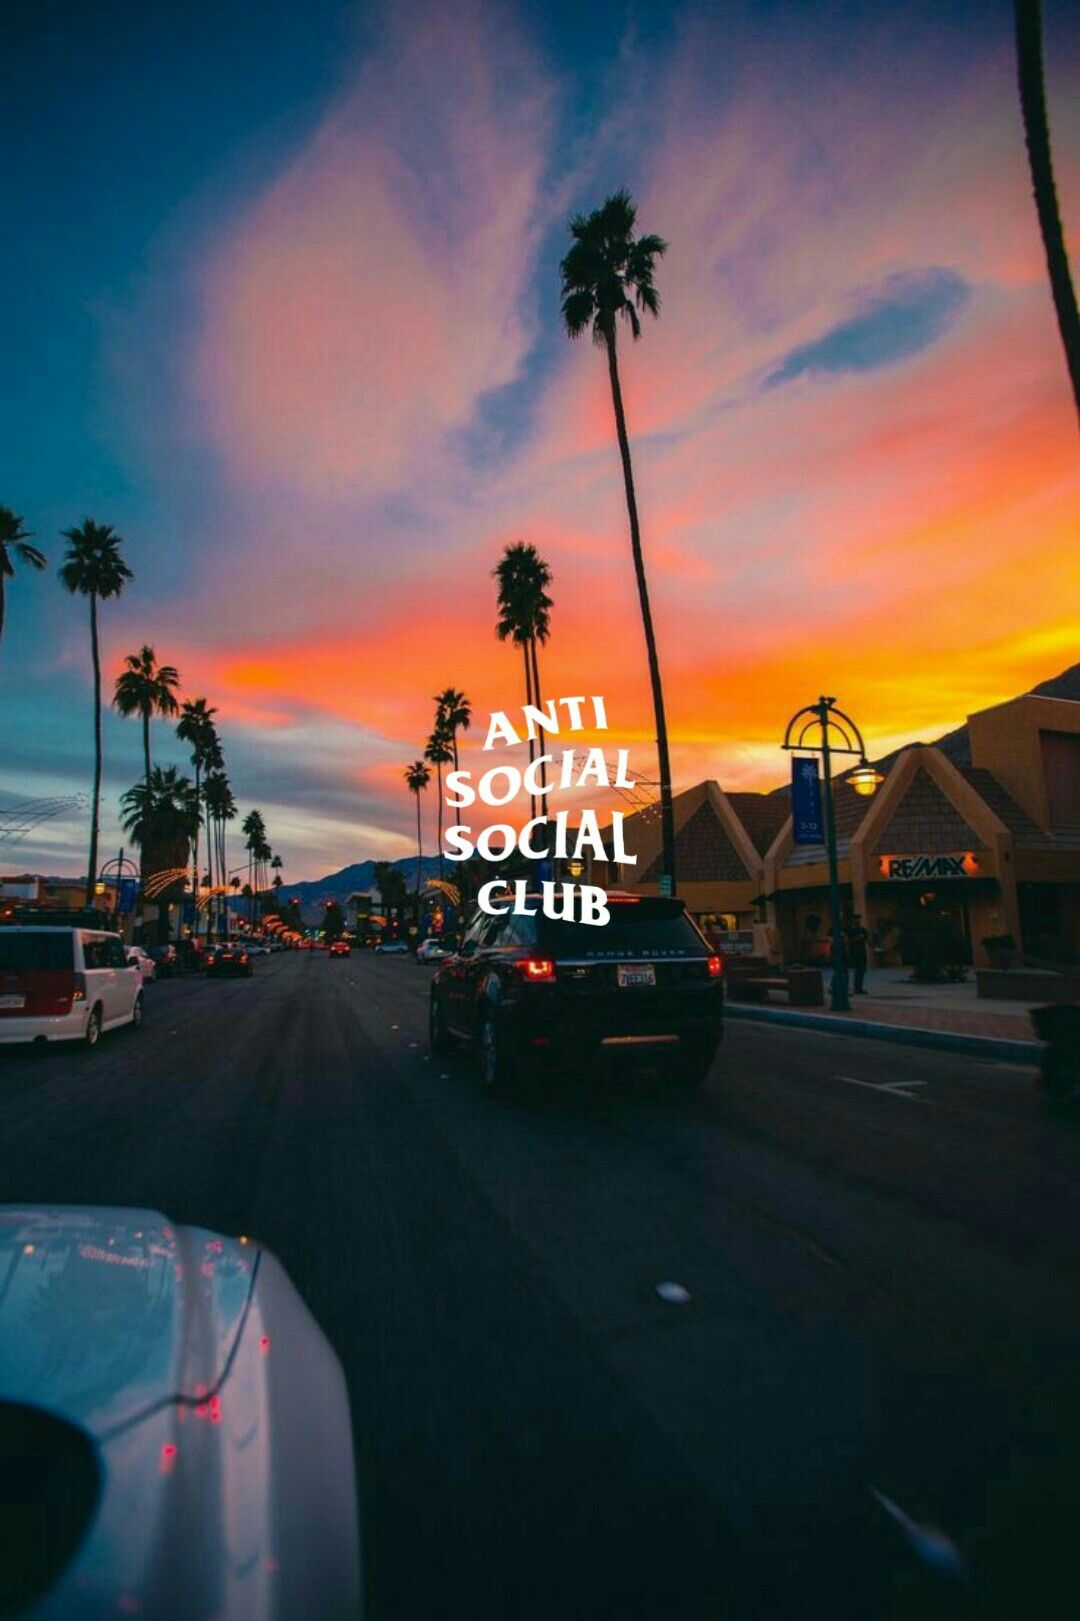 Anti Social Club Photo Wallpaper Sunrise Photography Nature Photo Wallpaper Aesthetic Backgrounds